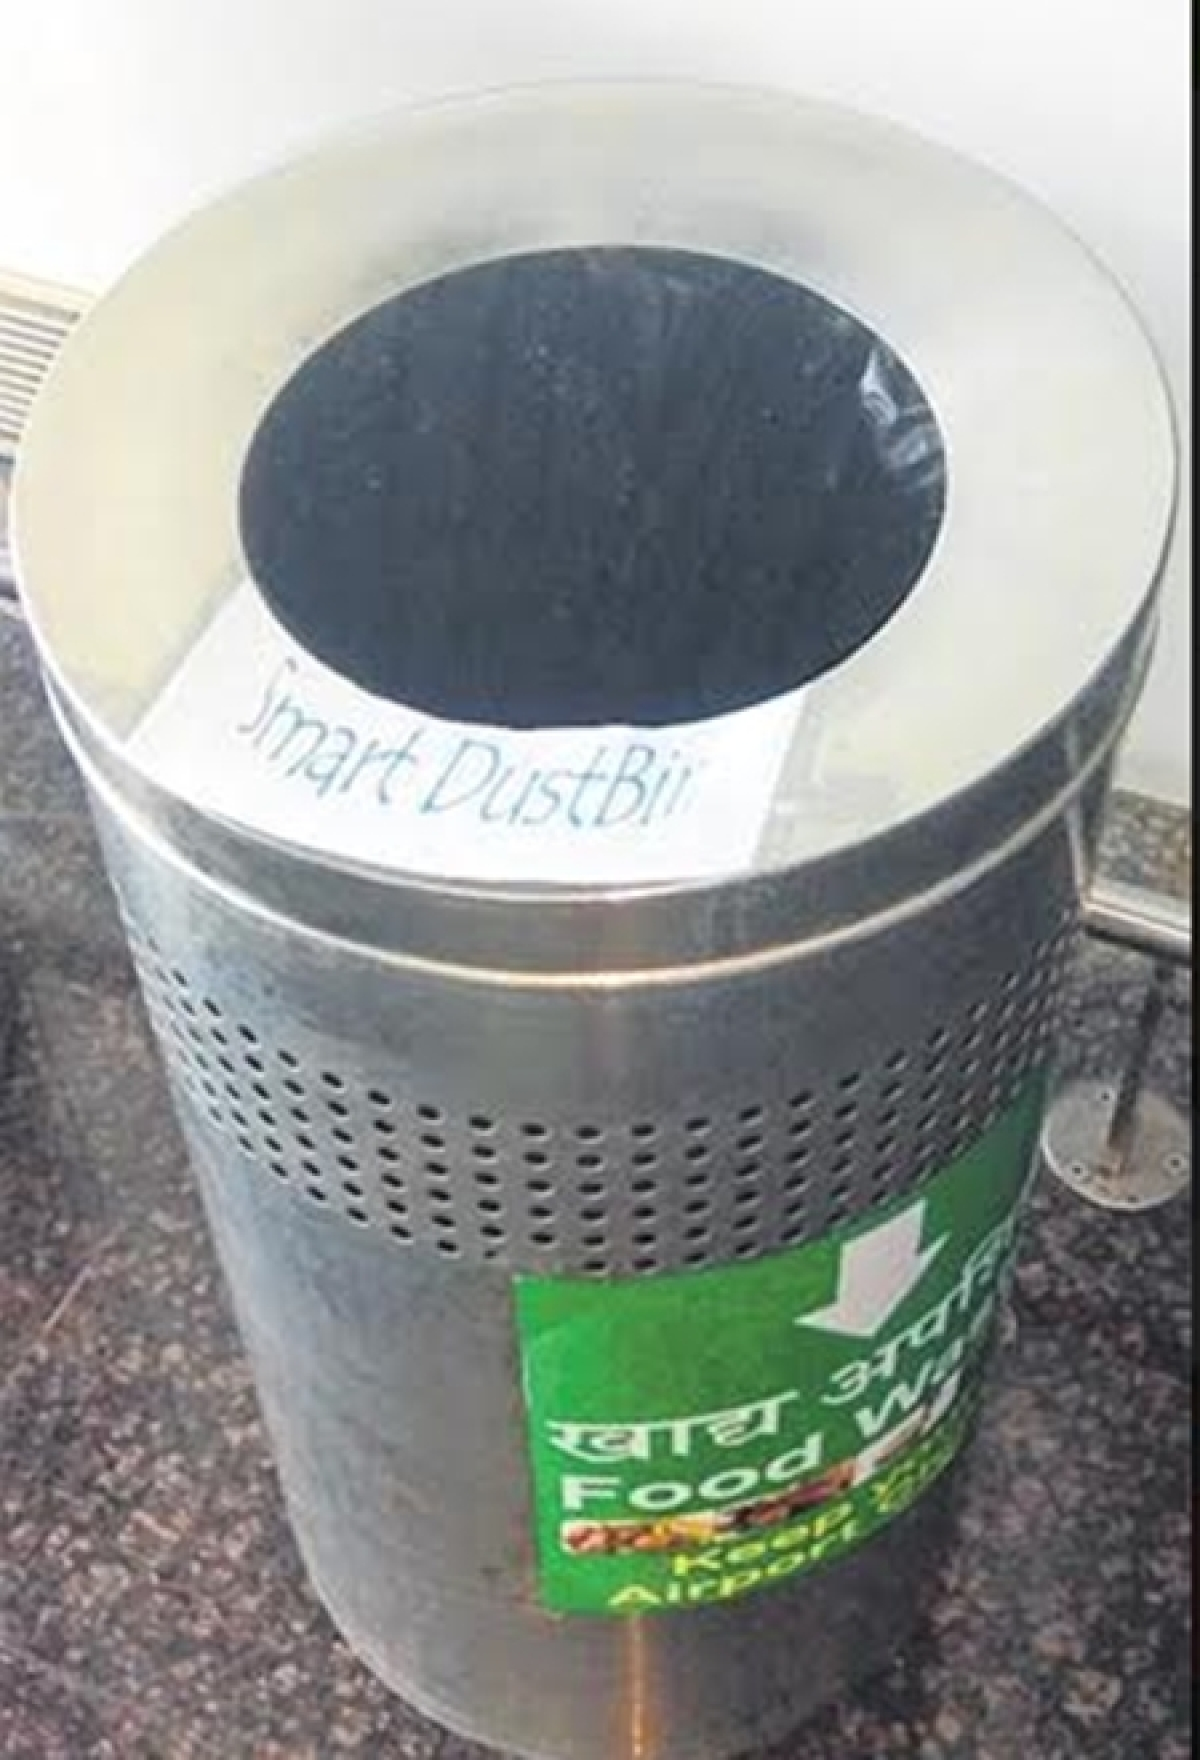 Indore: Smart dustbin sends alert message to airport manager